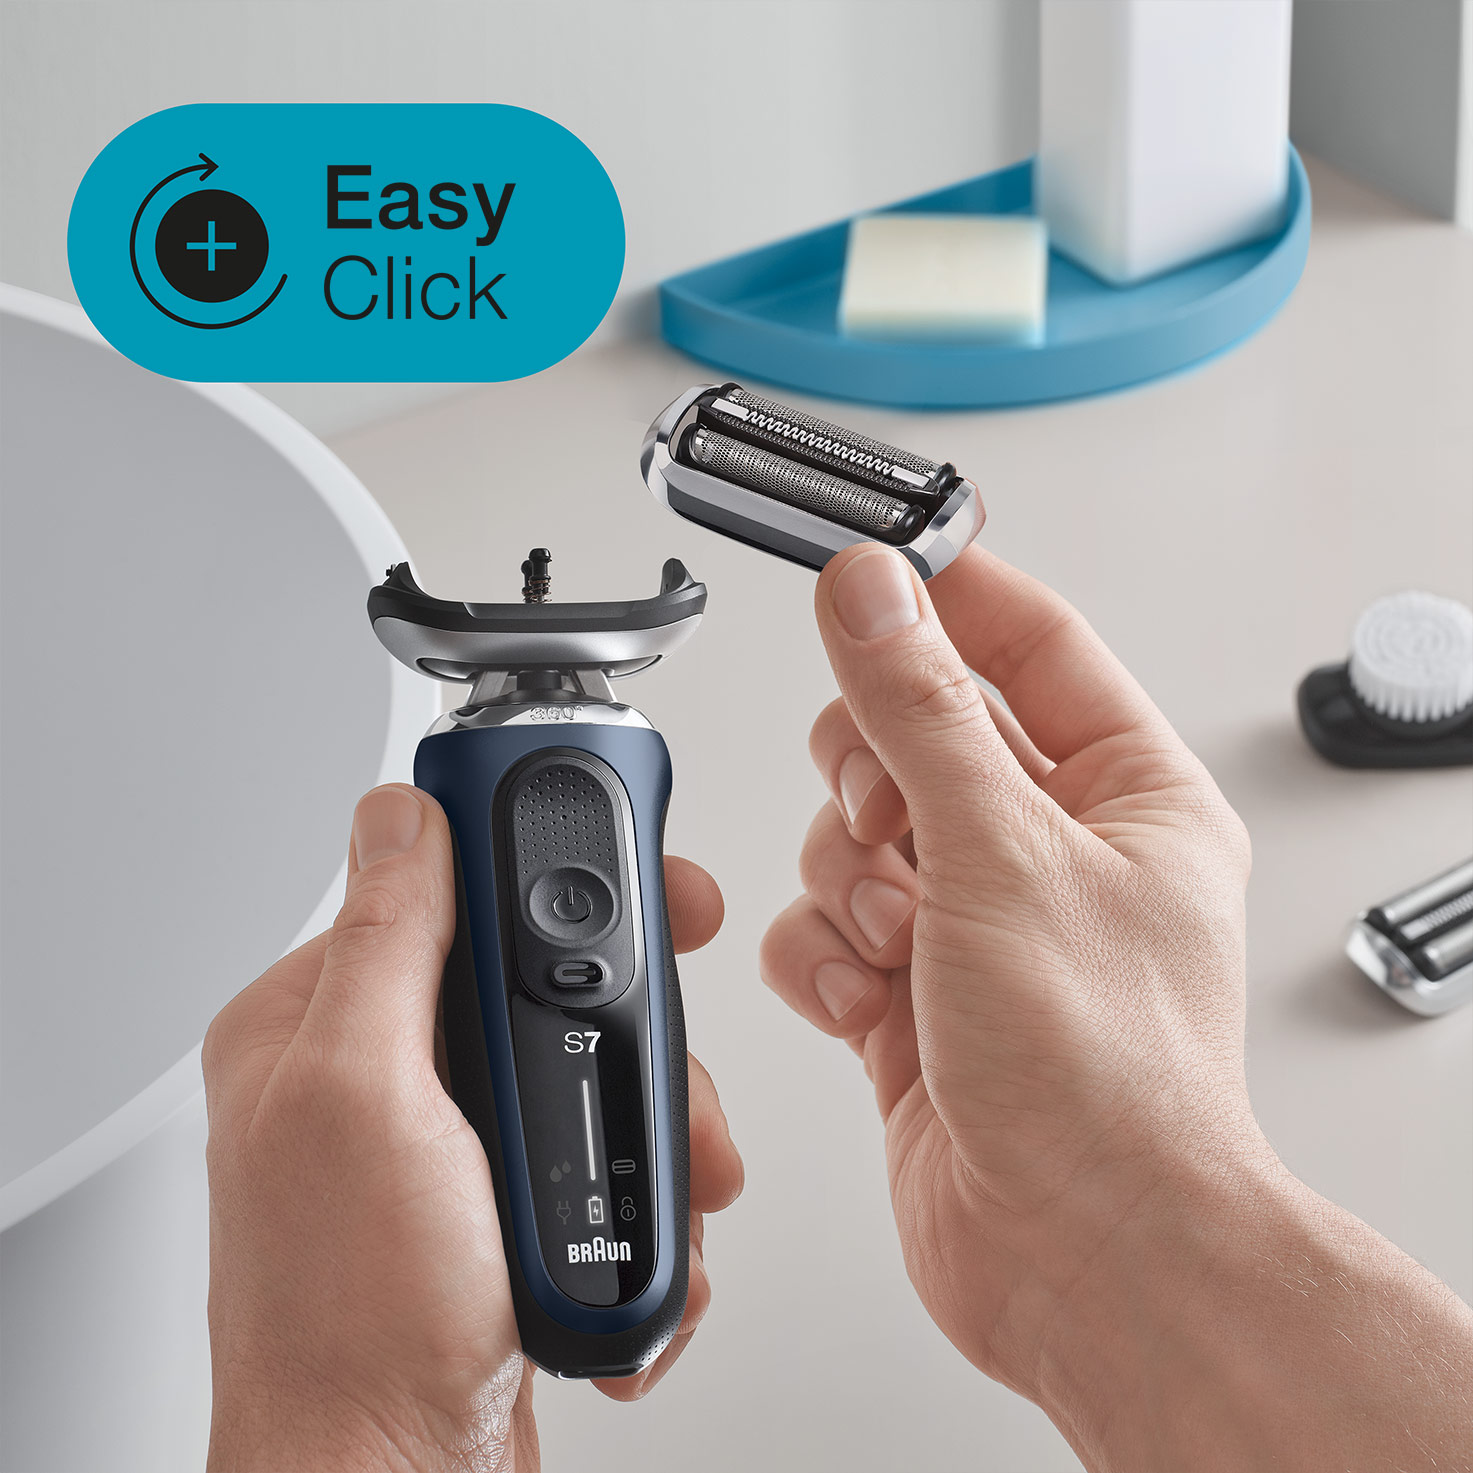 Braun Series 7 blue easy click shaver head